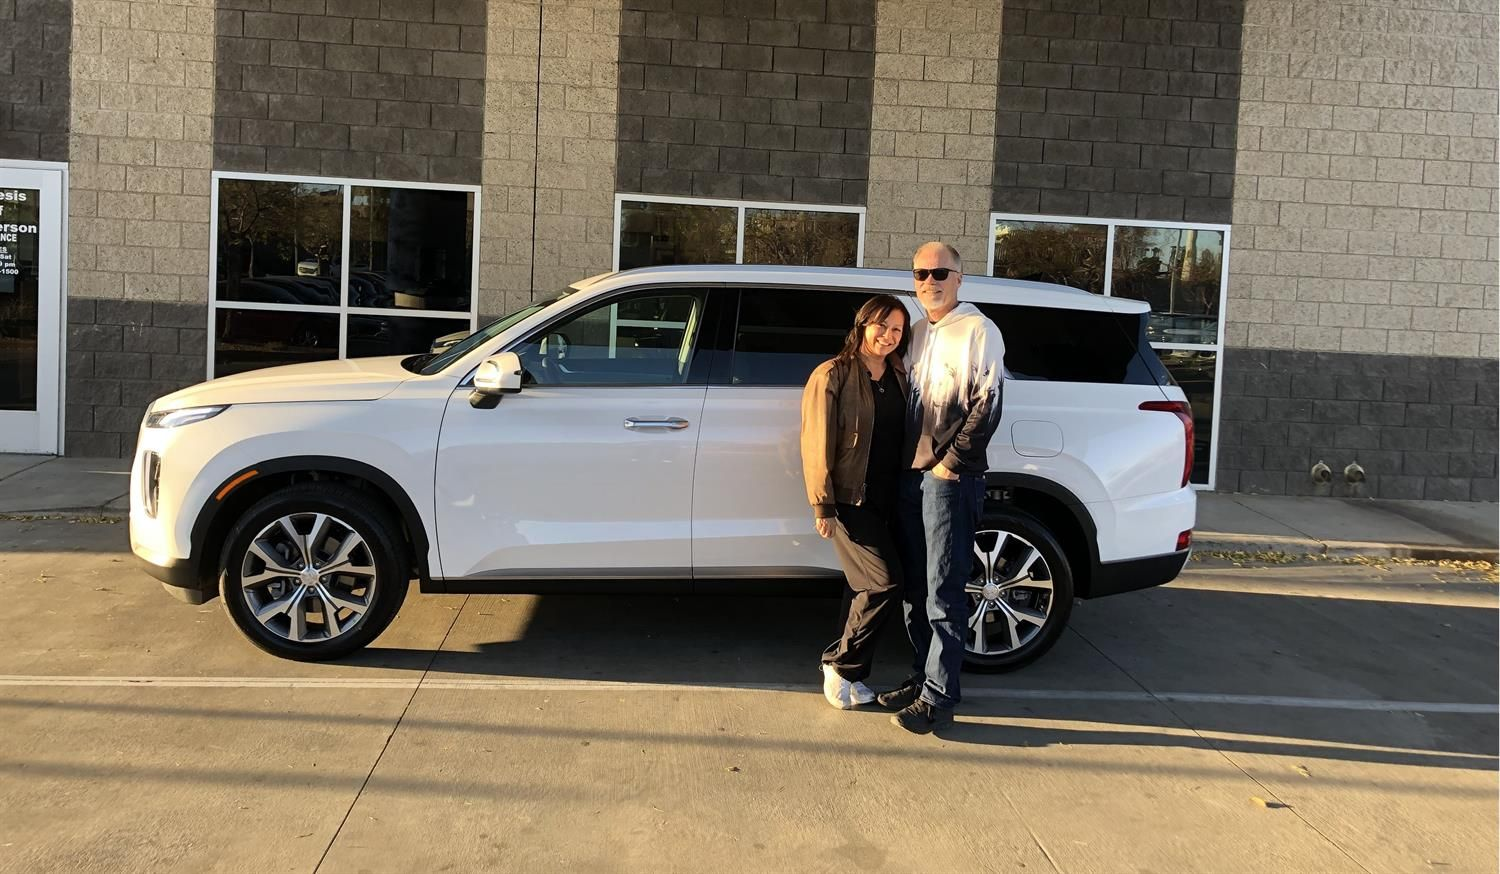 Rochelle Congratulations On Your New 2020 Hyundai Palisade Thank You Again For The Opportunity To Earn Your Business Hyundai Dealership New Hyundai Hyundai